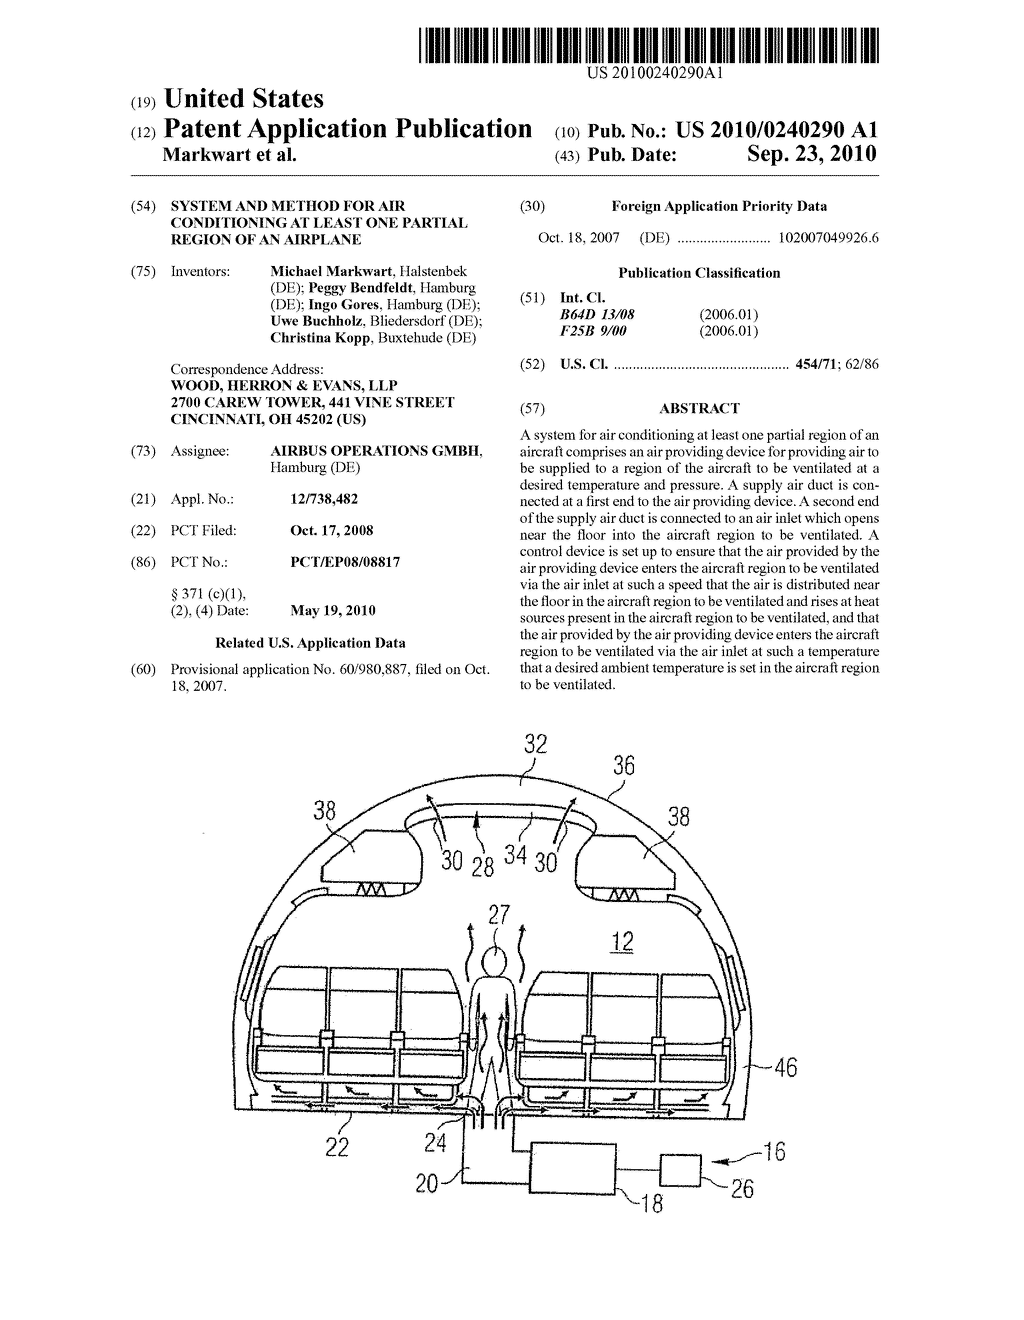 System And Method For Air Conditioning At Least One Partial Region Of An Airplane - diagram, schematic, and image 01